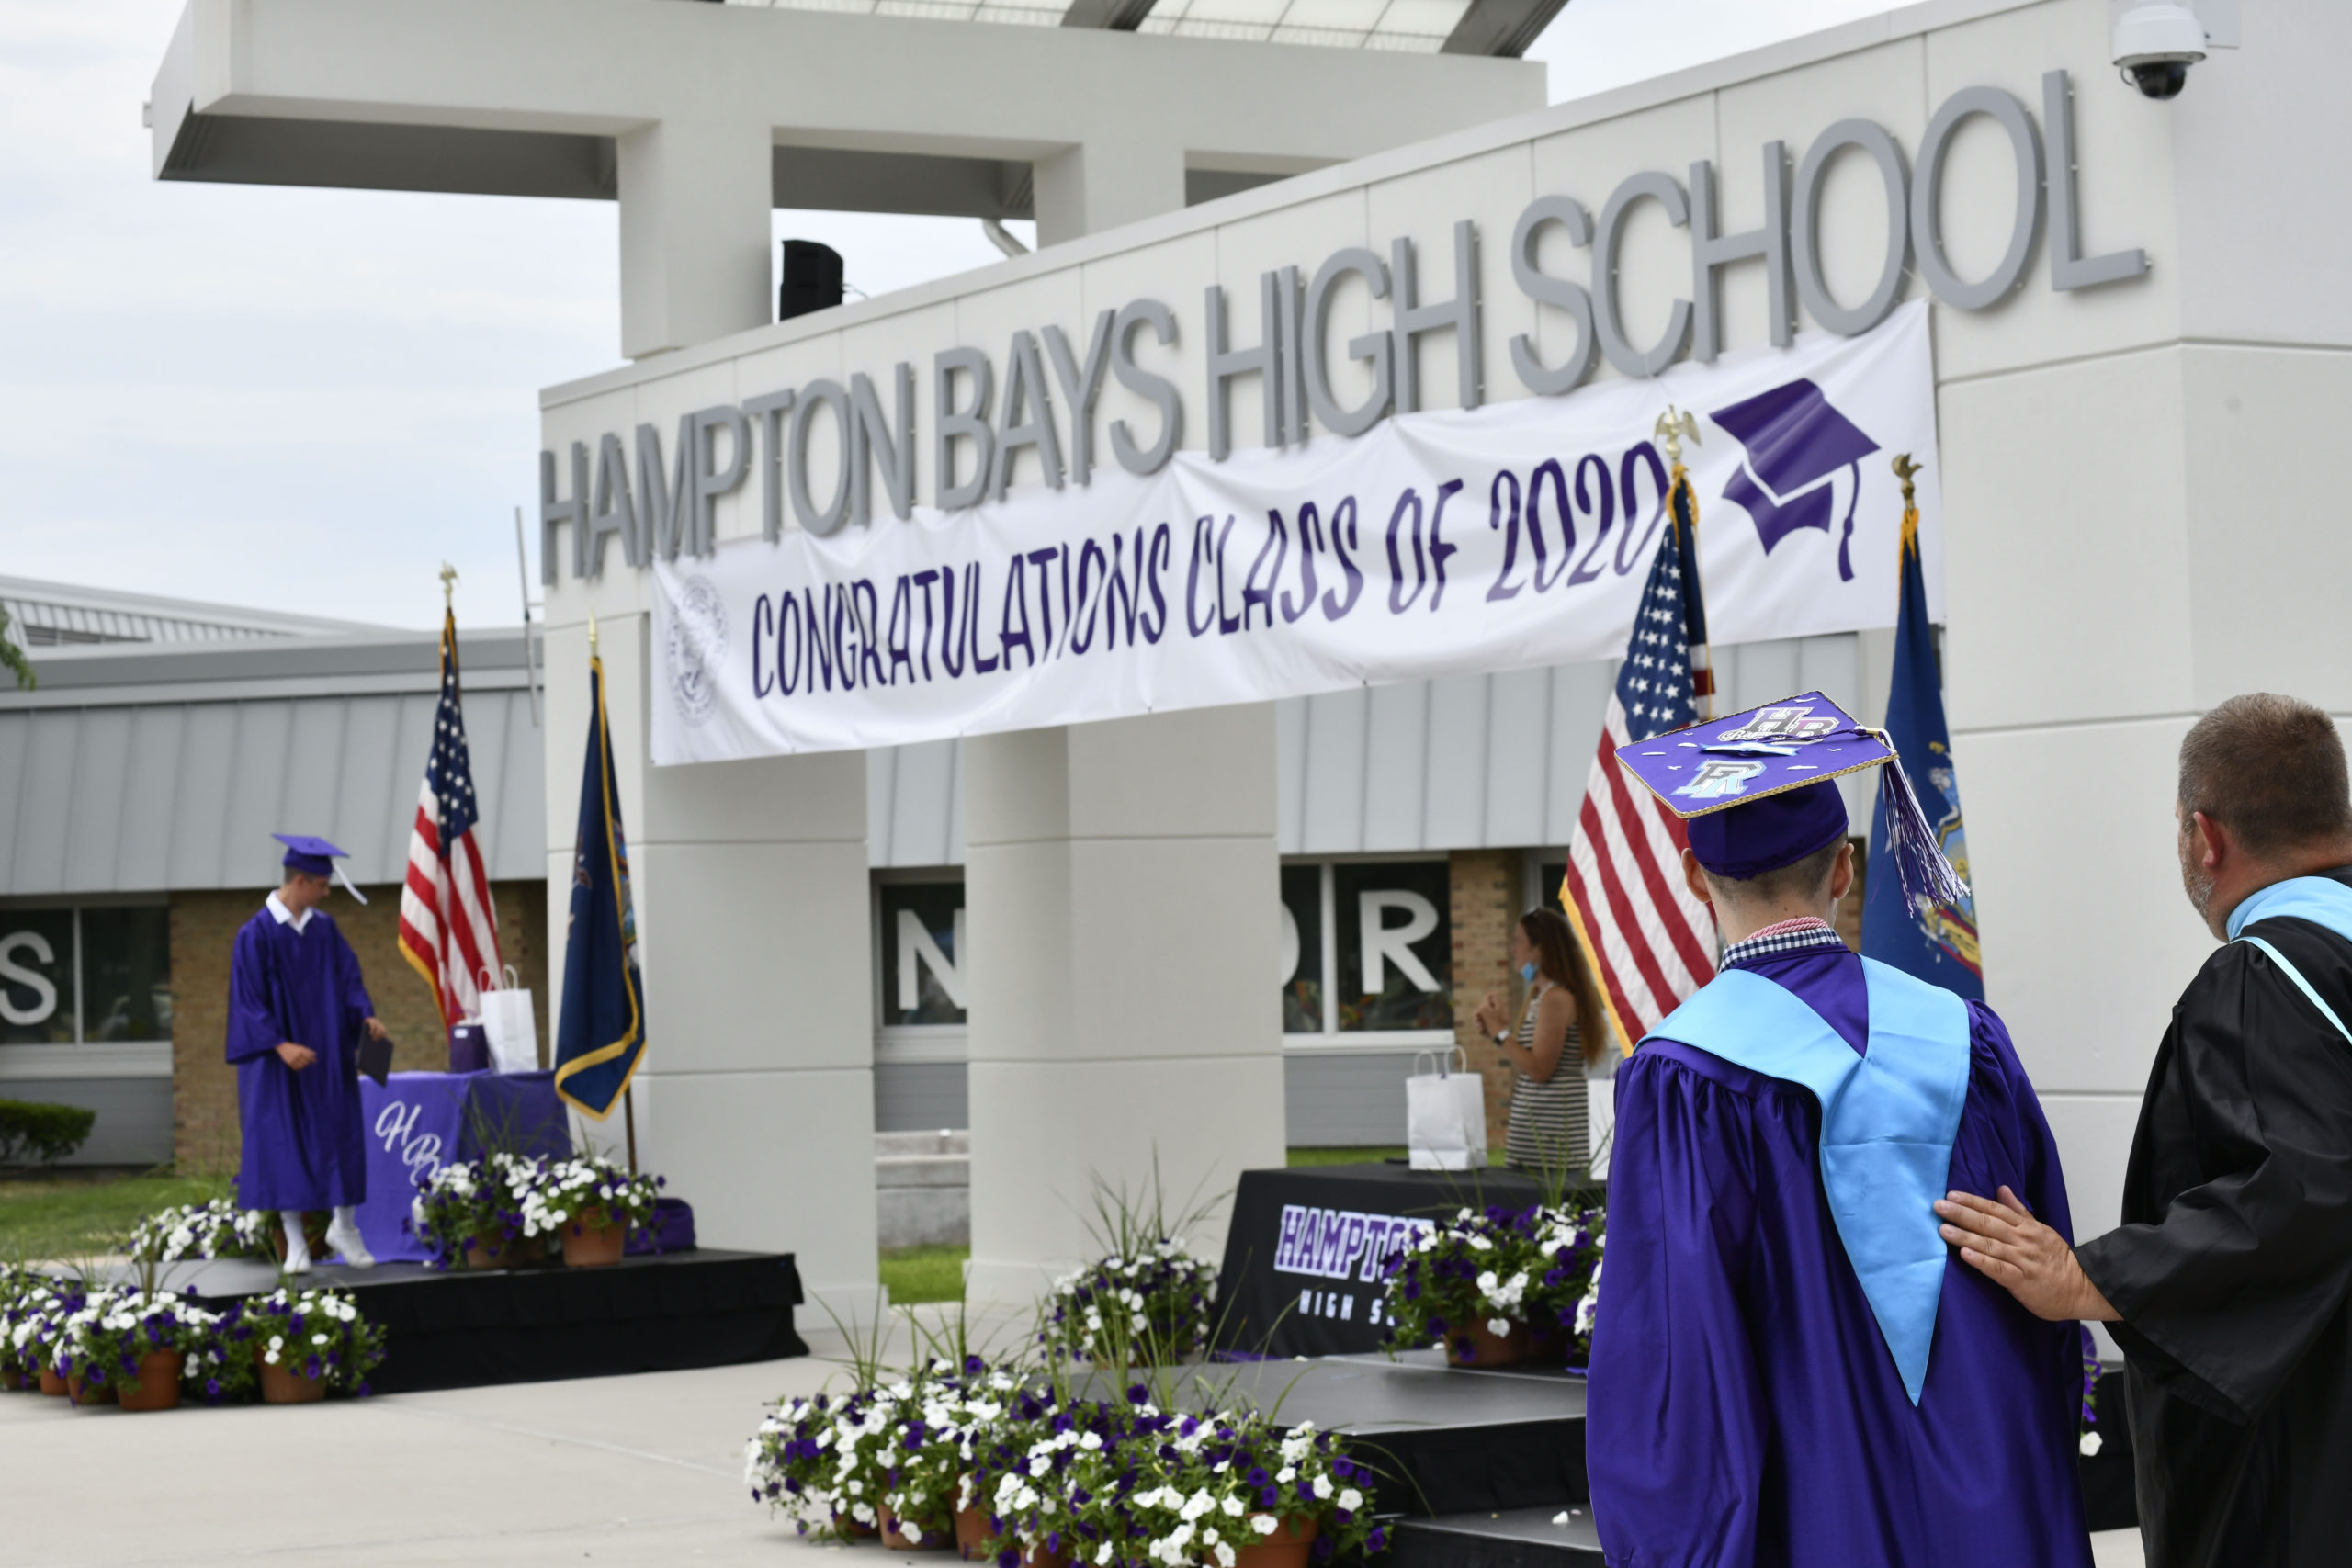 Hampton Bays Class of 2020 graduation on Saturday.